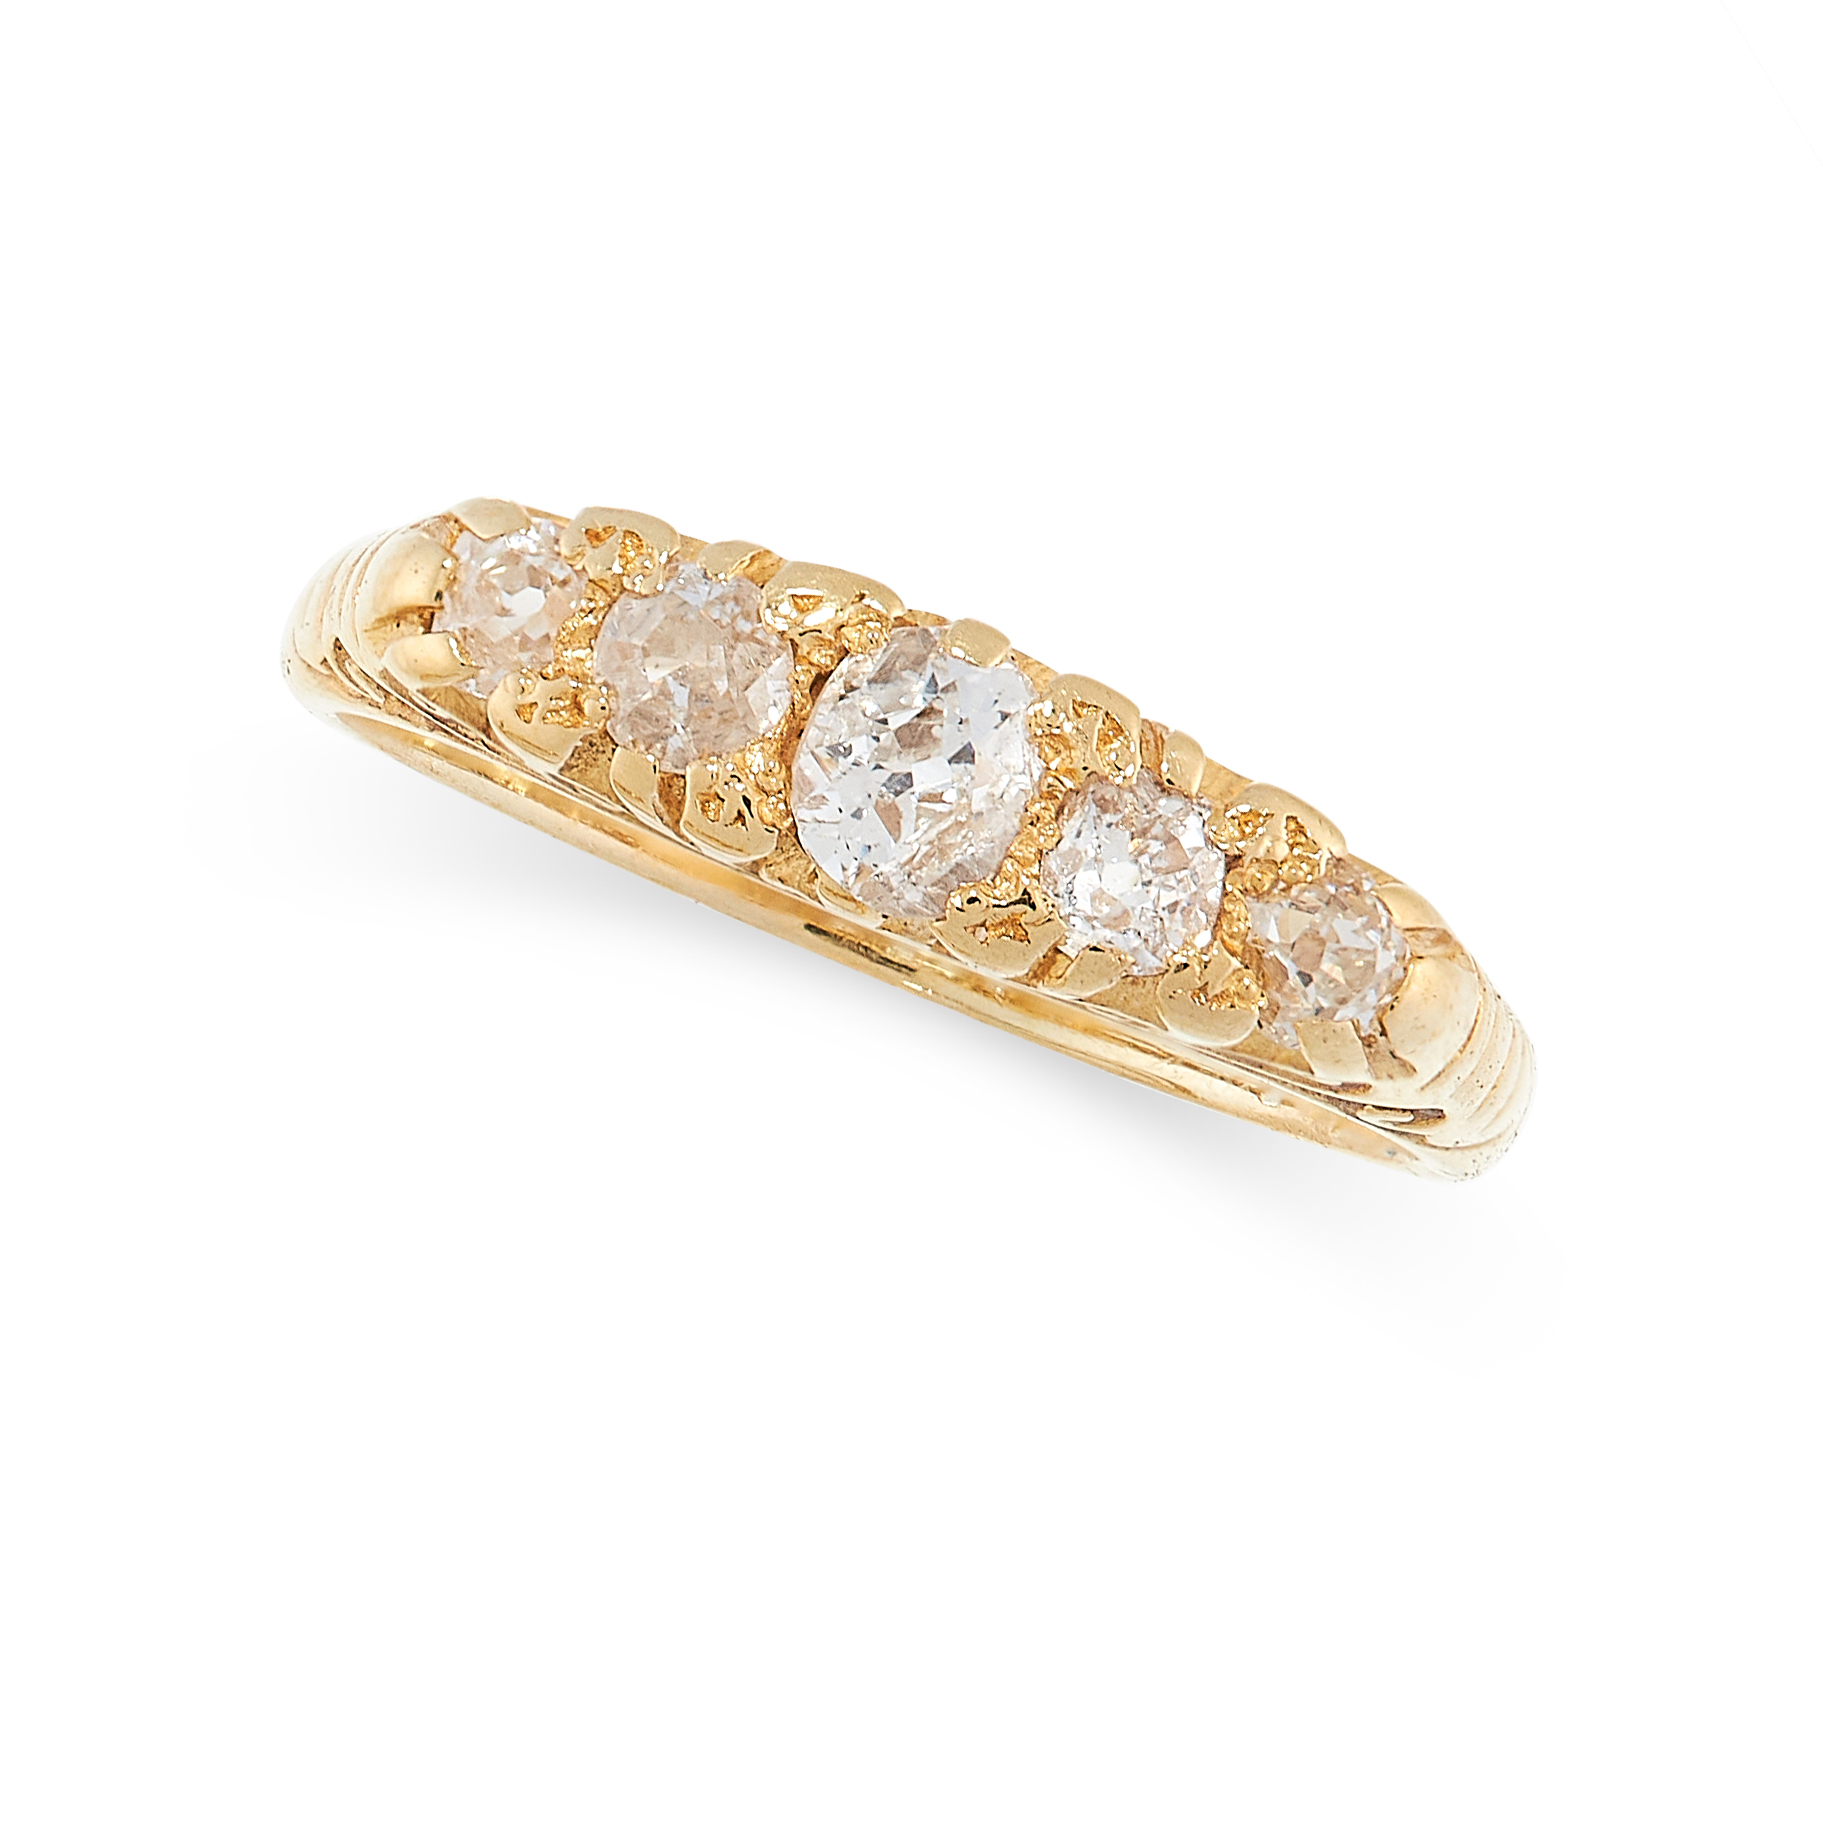 ANTIQUE DIAMOND RING in 18ct yellow gold, set with five graduated old cut diamonds, stamped 18C,